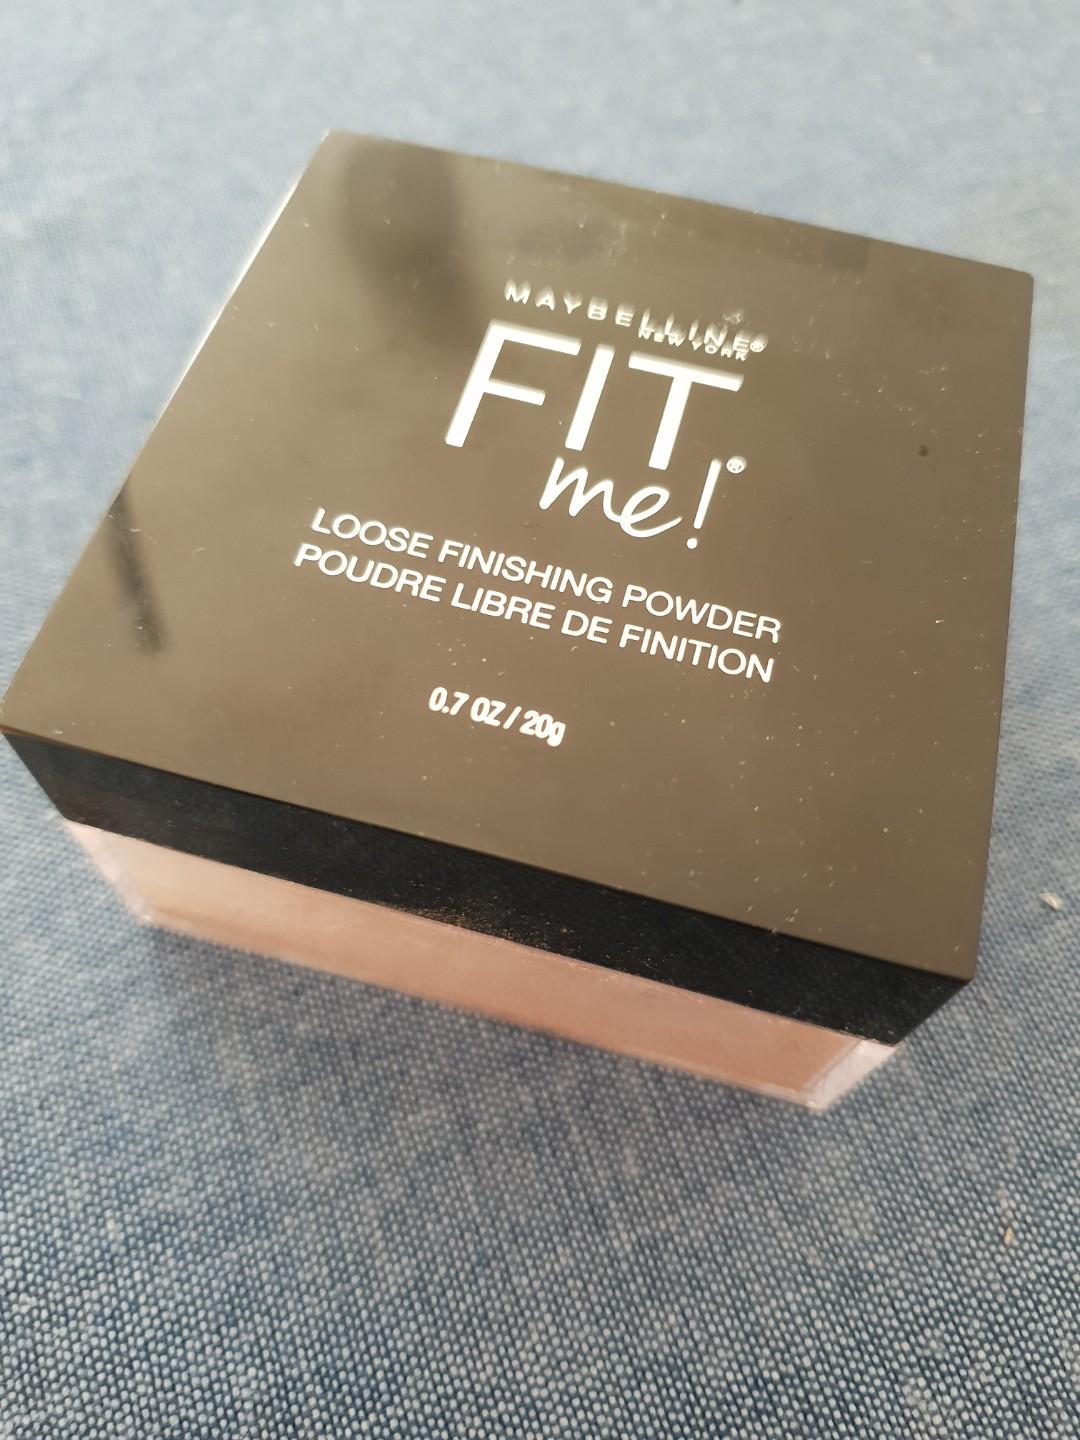 Maybelline loose fit me powder Medium POST included